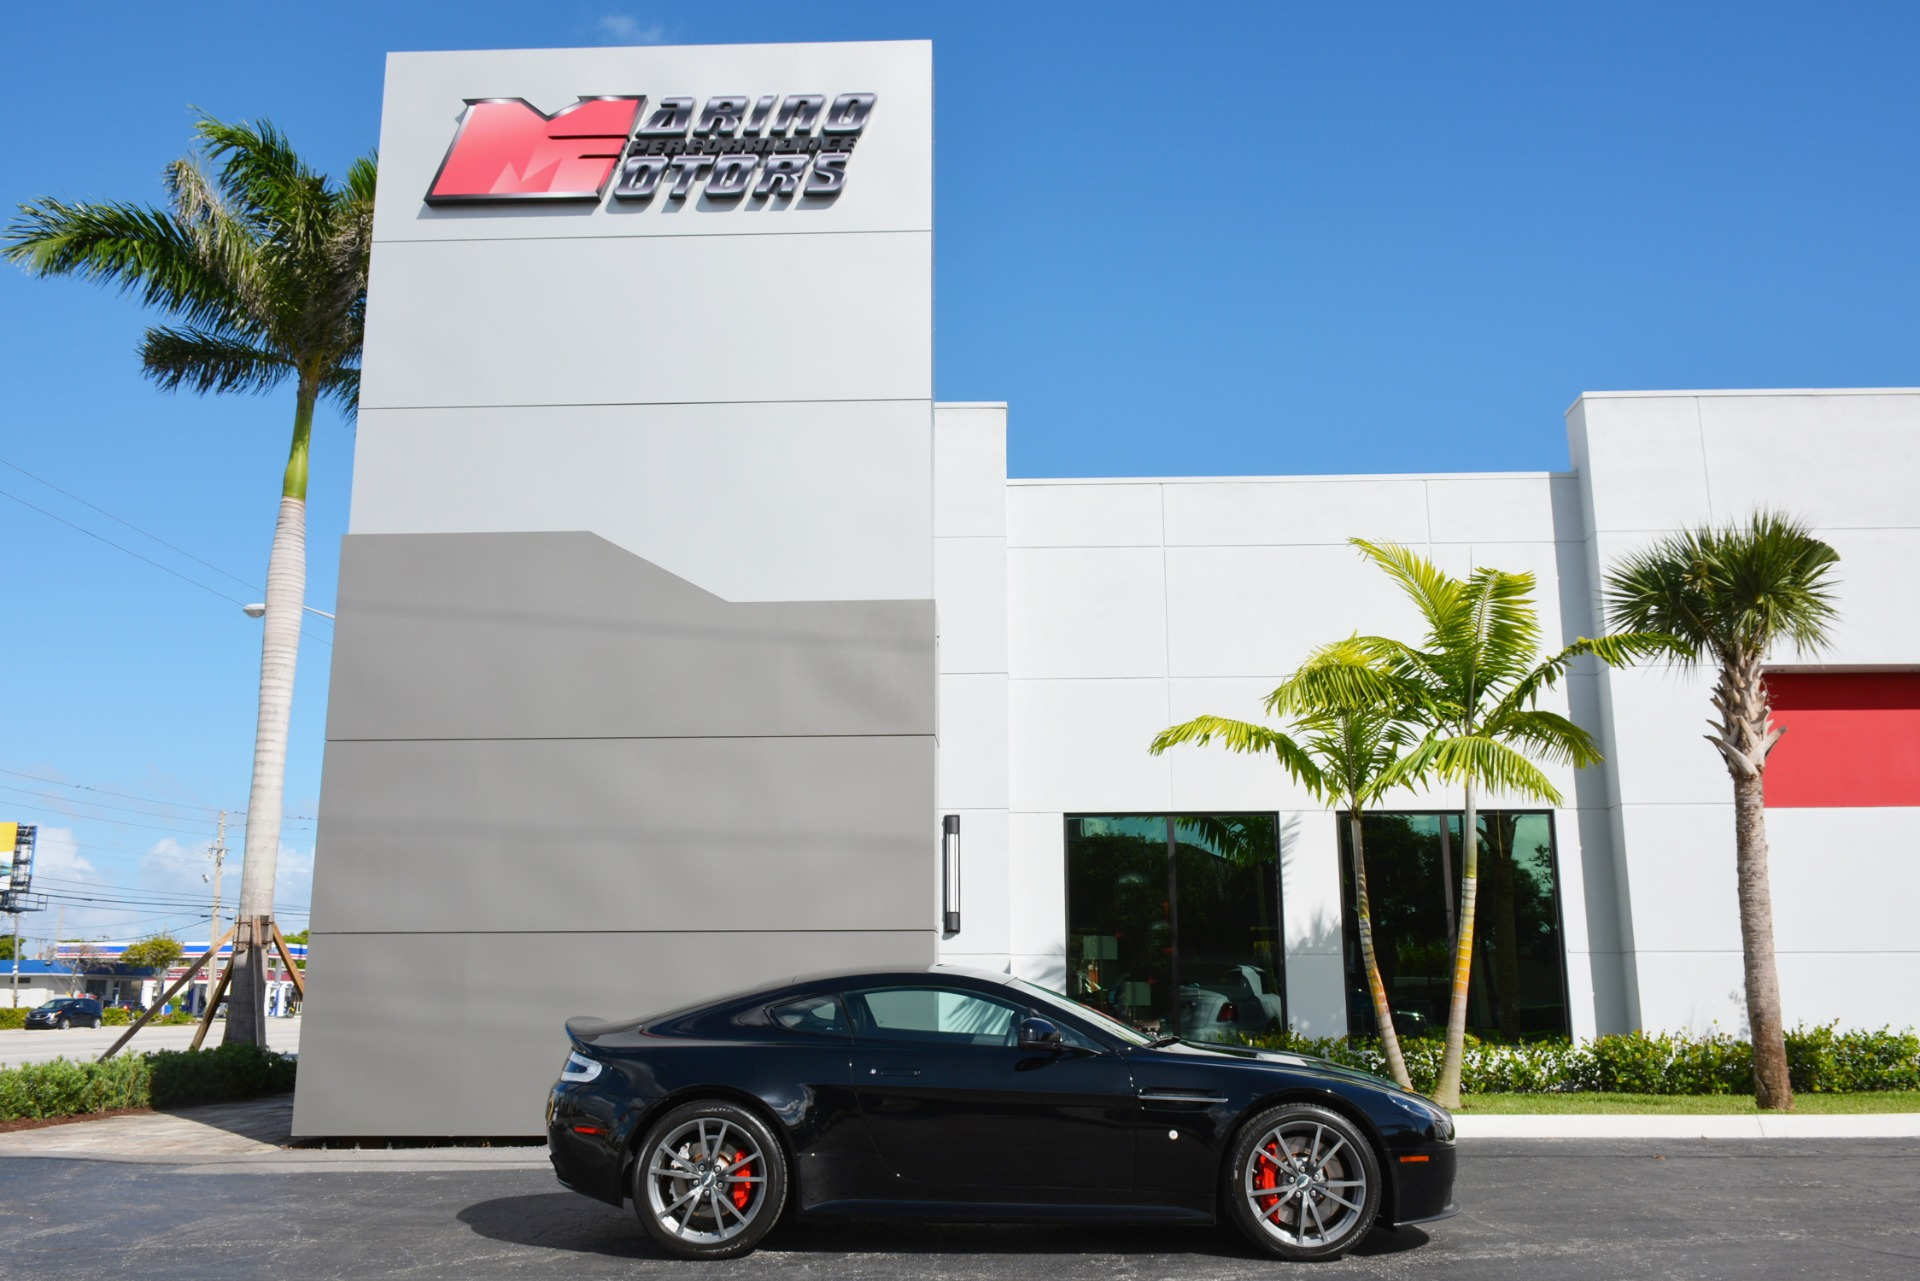 Used 2015 Aston Martin V8 Vantage Gt For Sale 76 900 Marino